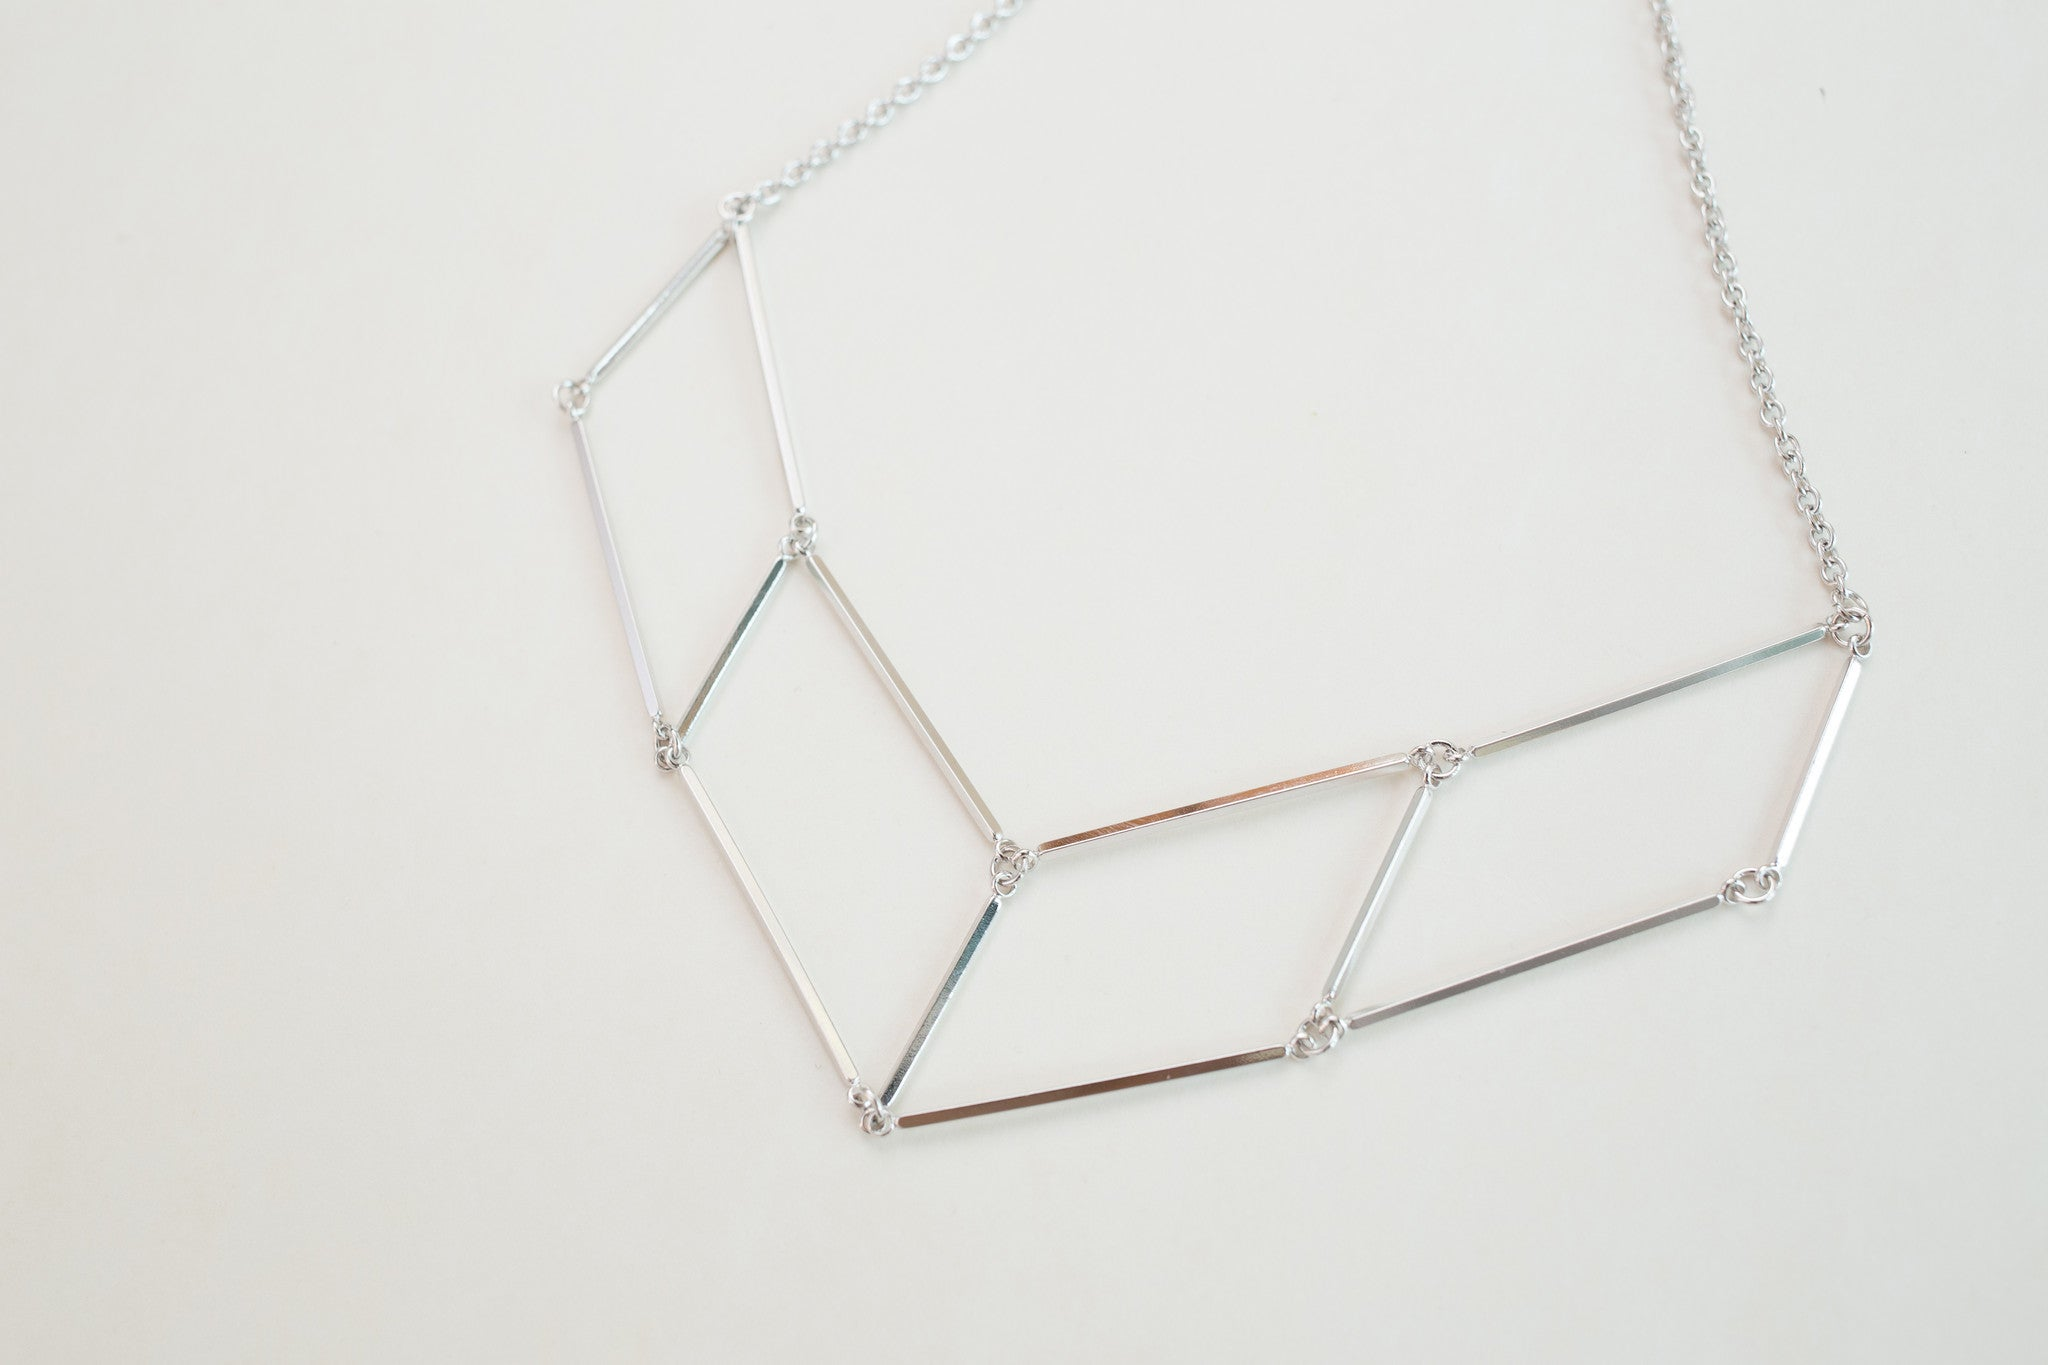 Silver Plate Necklace / NL8059